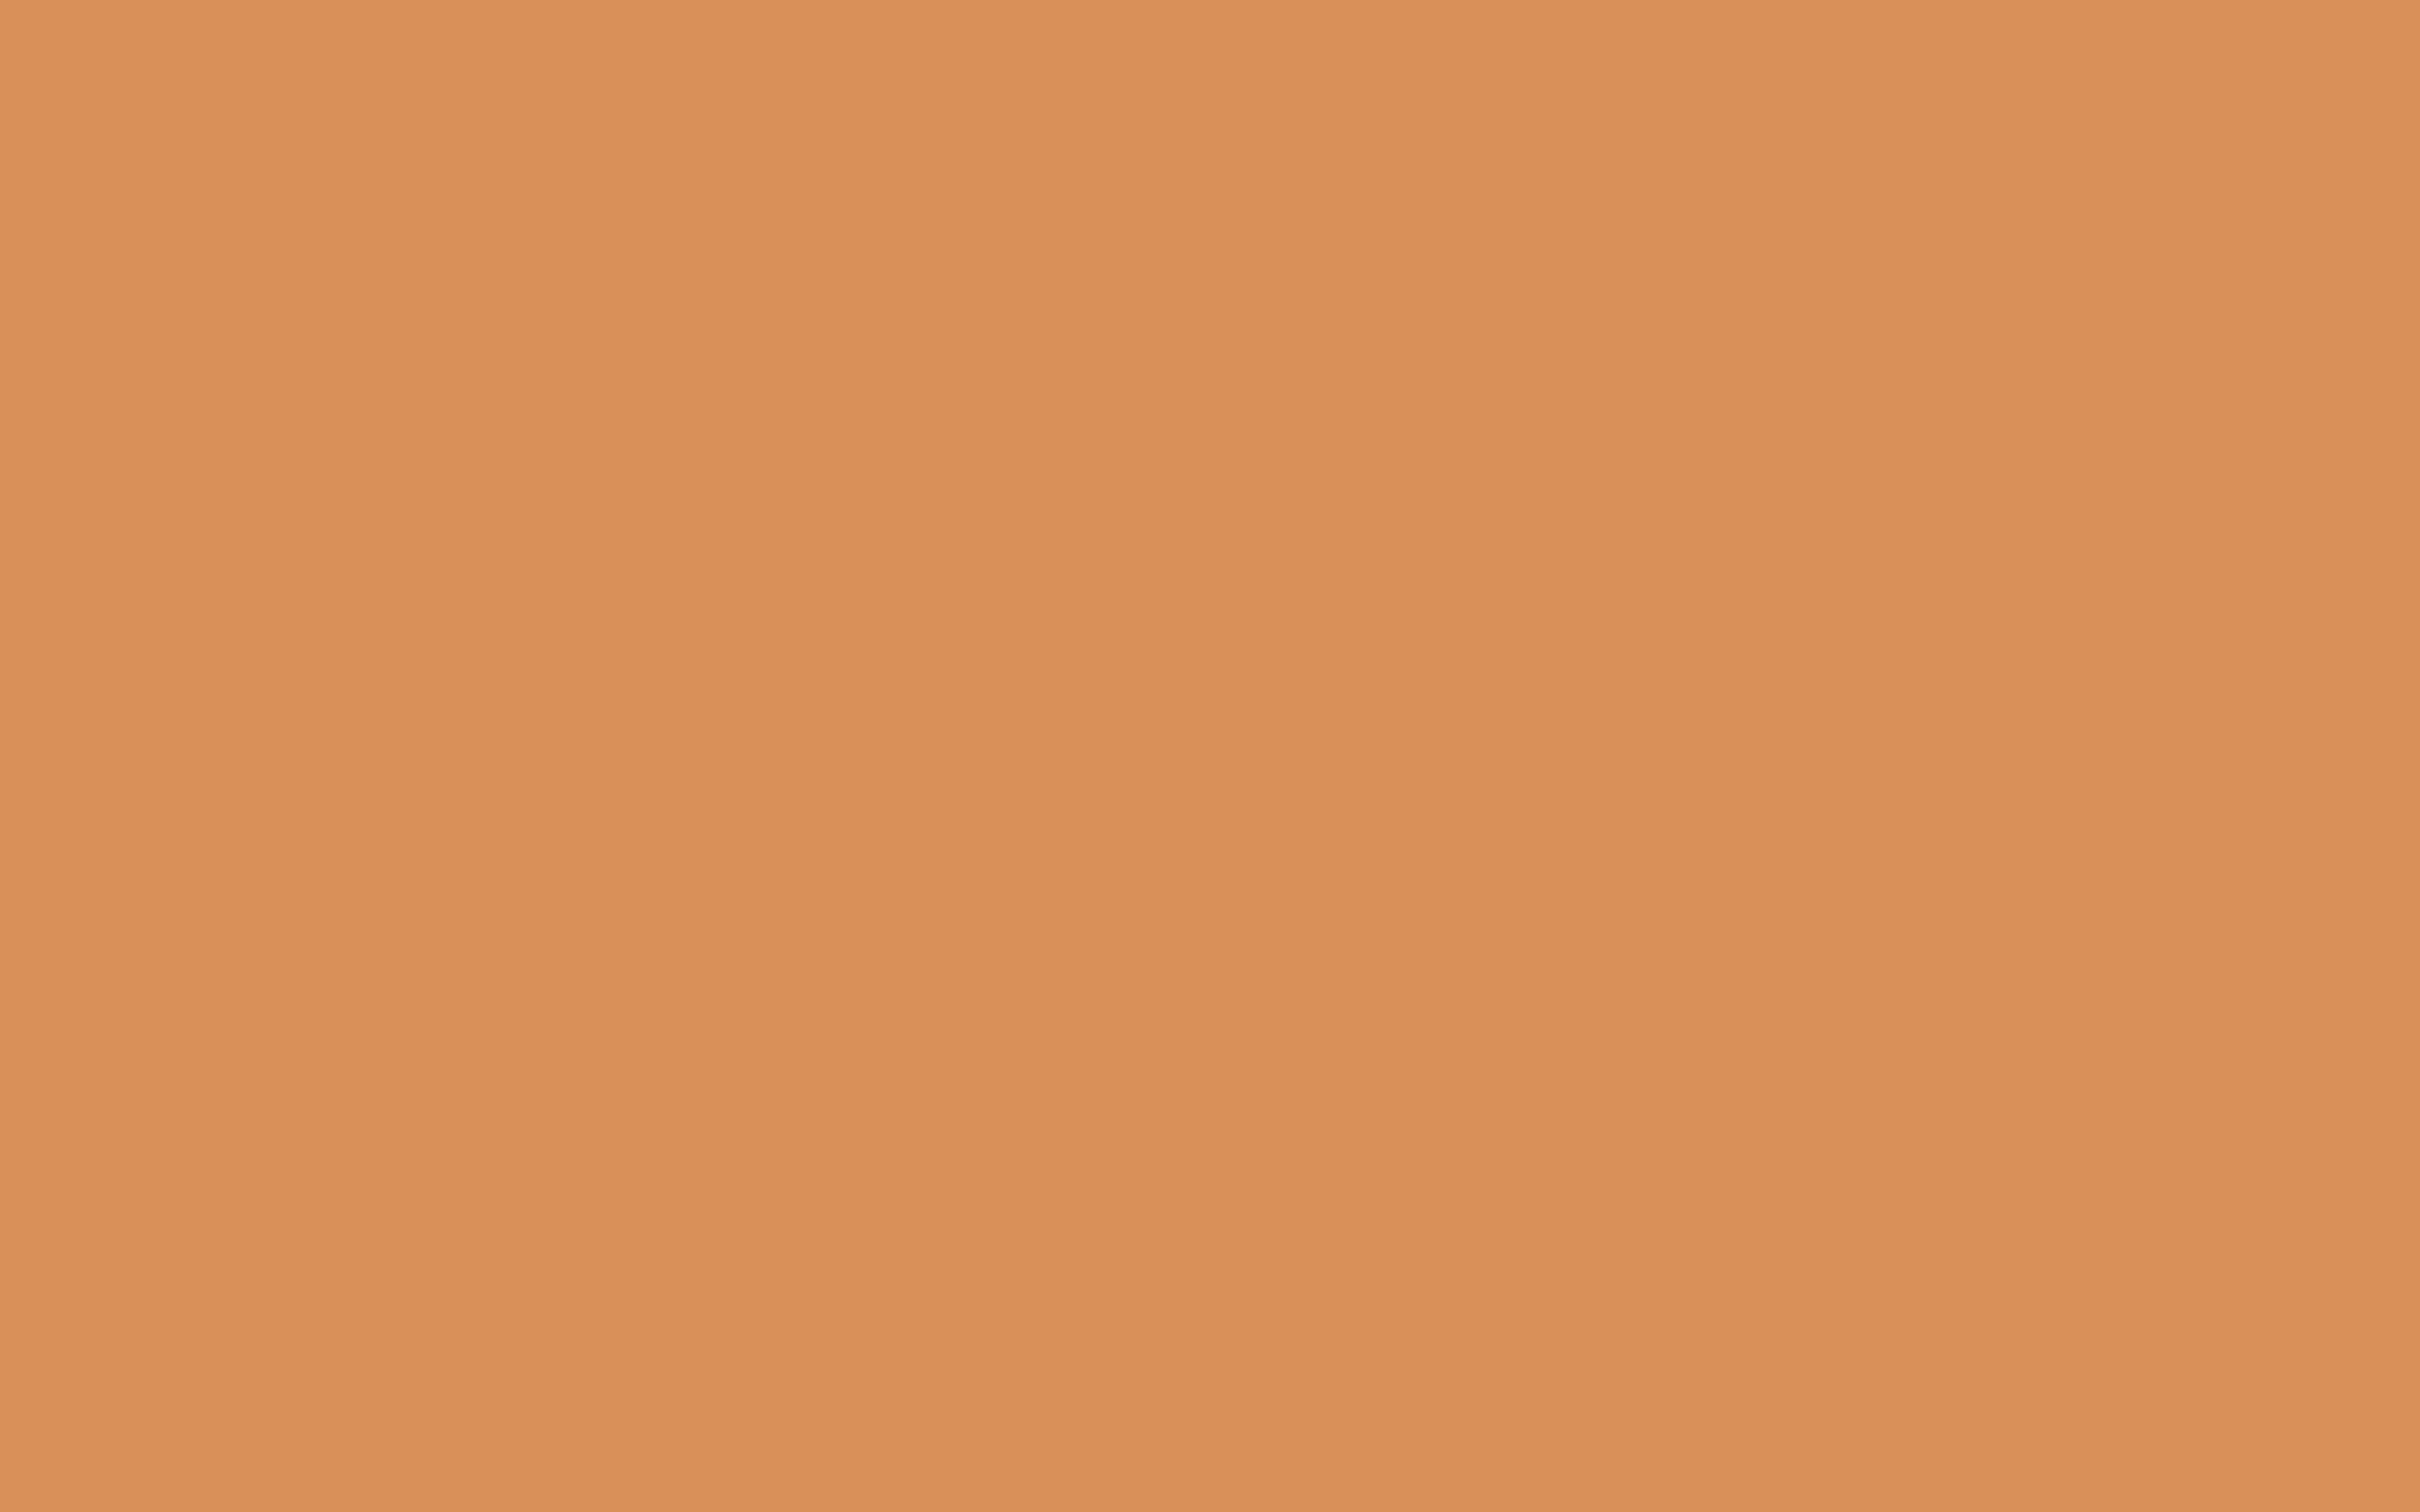 2560x1600 Persian Orange Solid Color Background